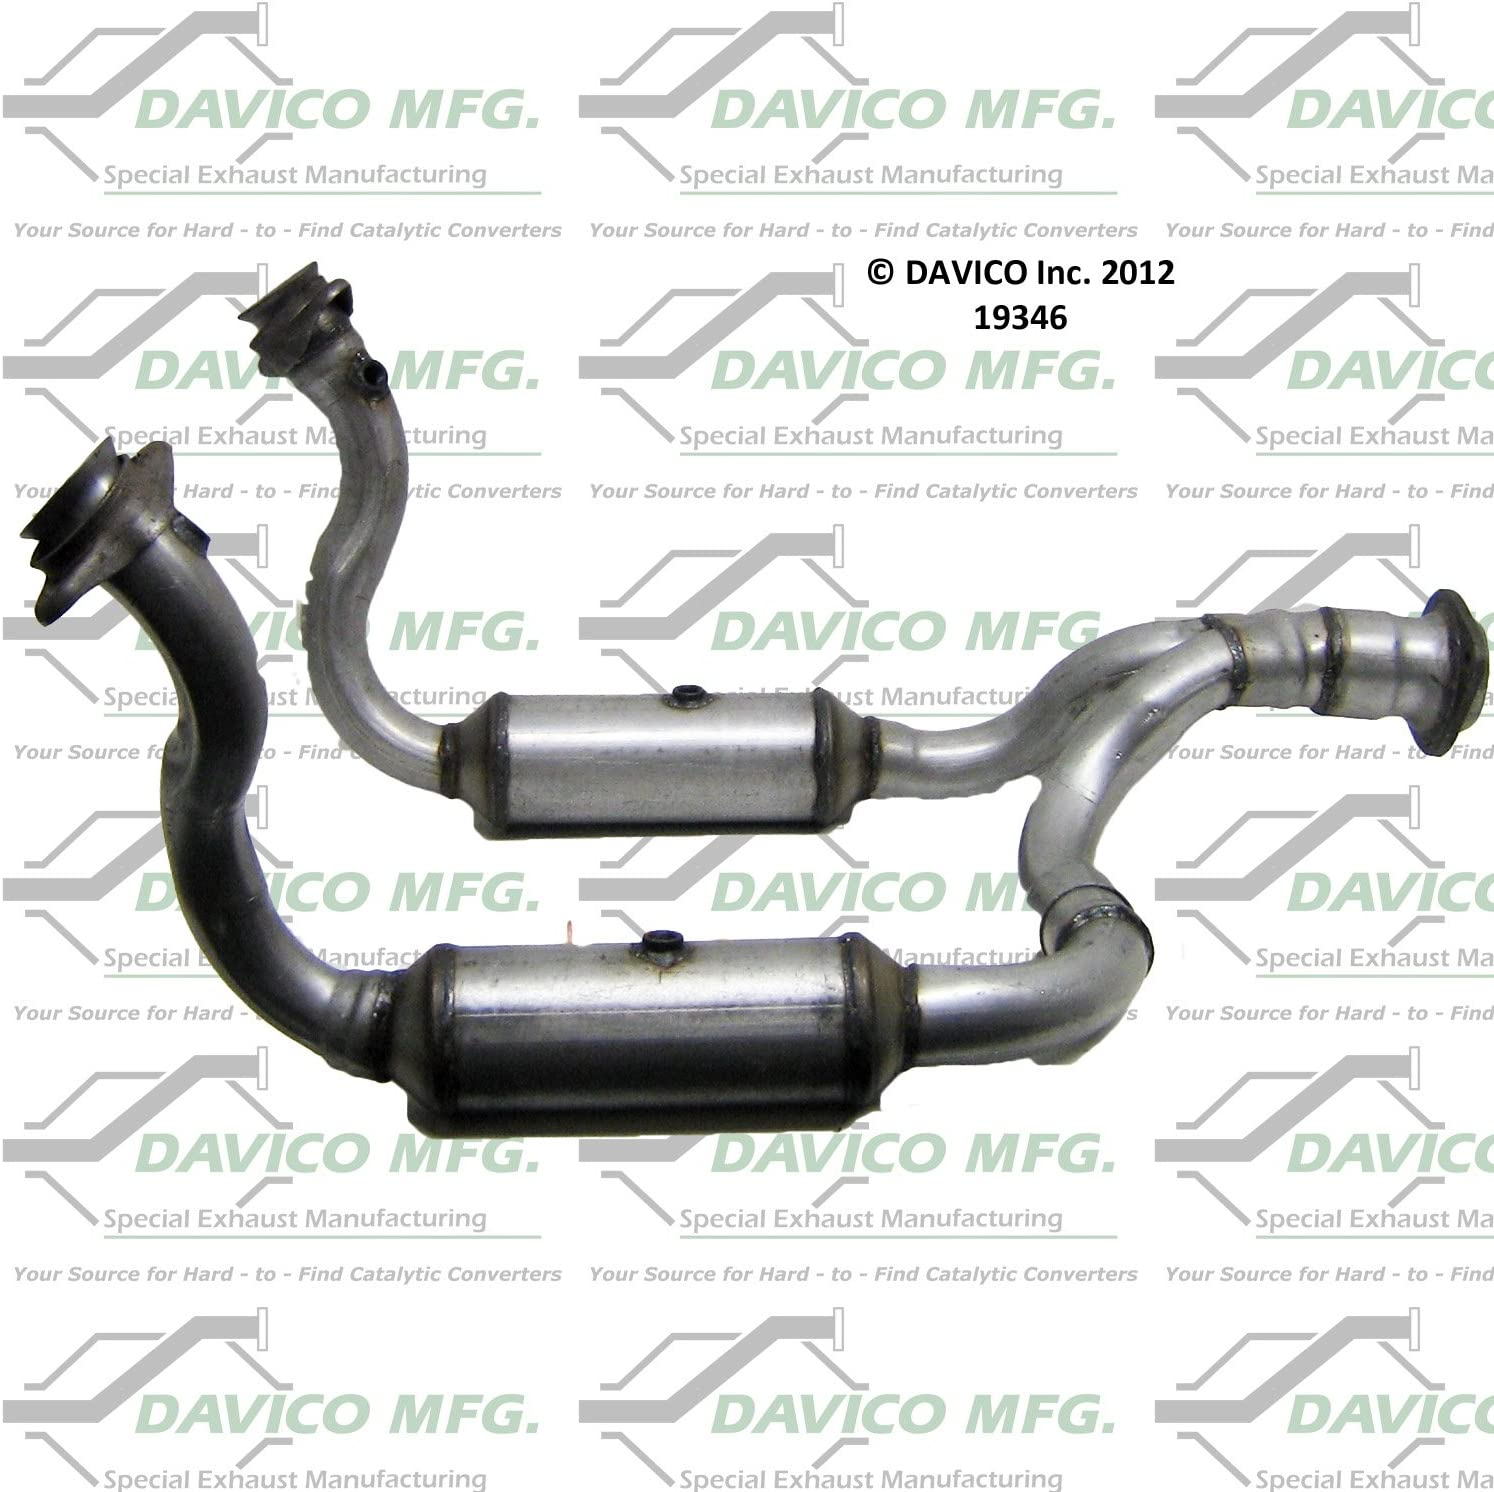 Davico Selling 19346 Catalytic 1 Converter Limited price Pack